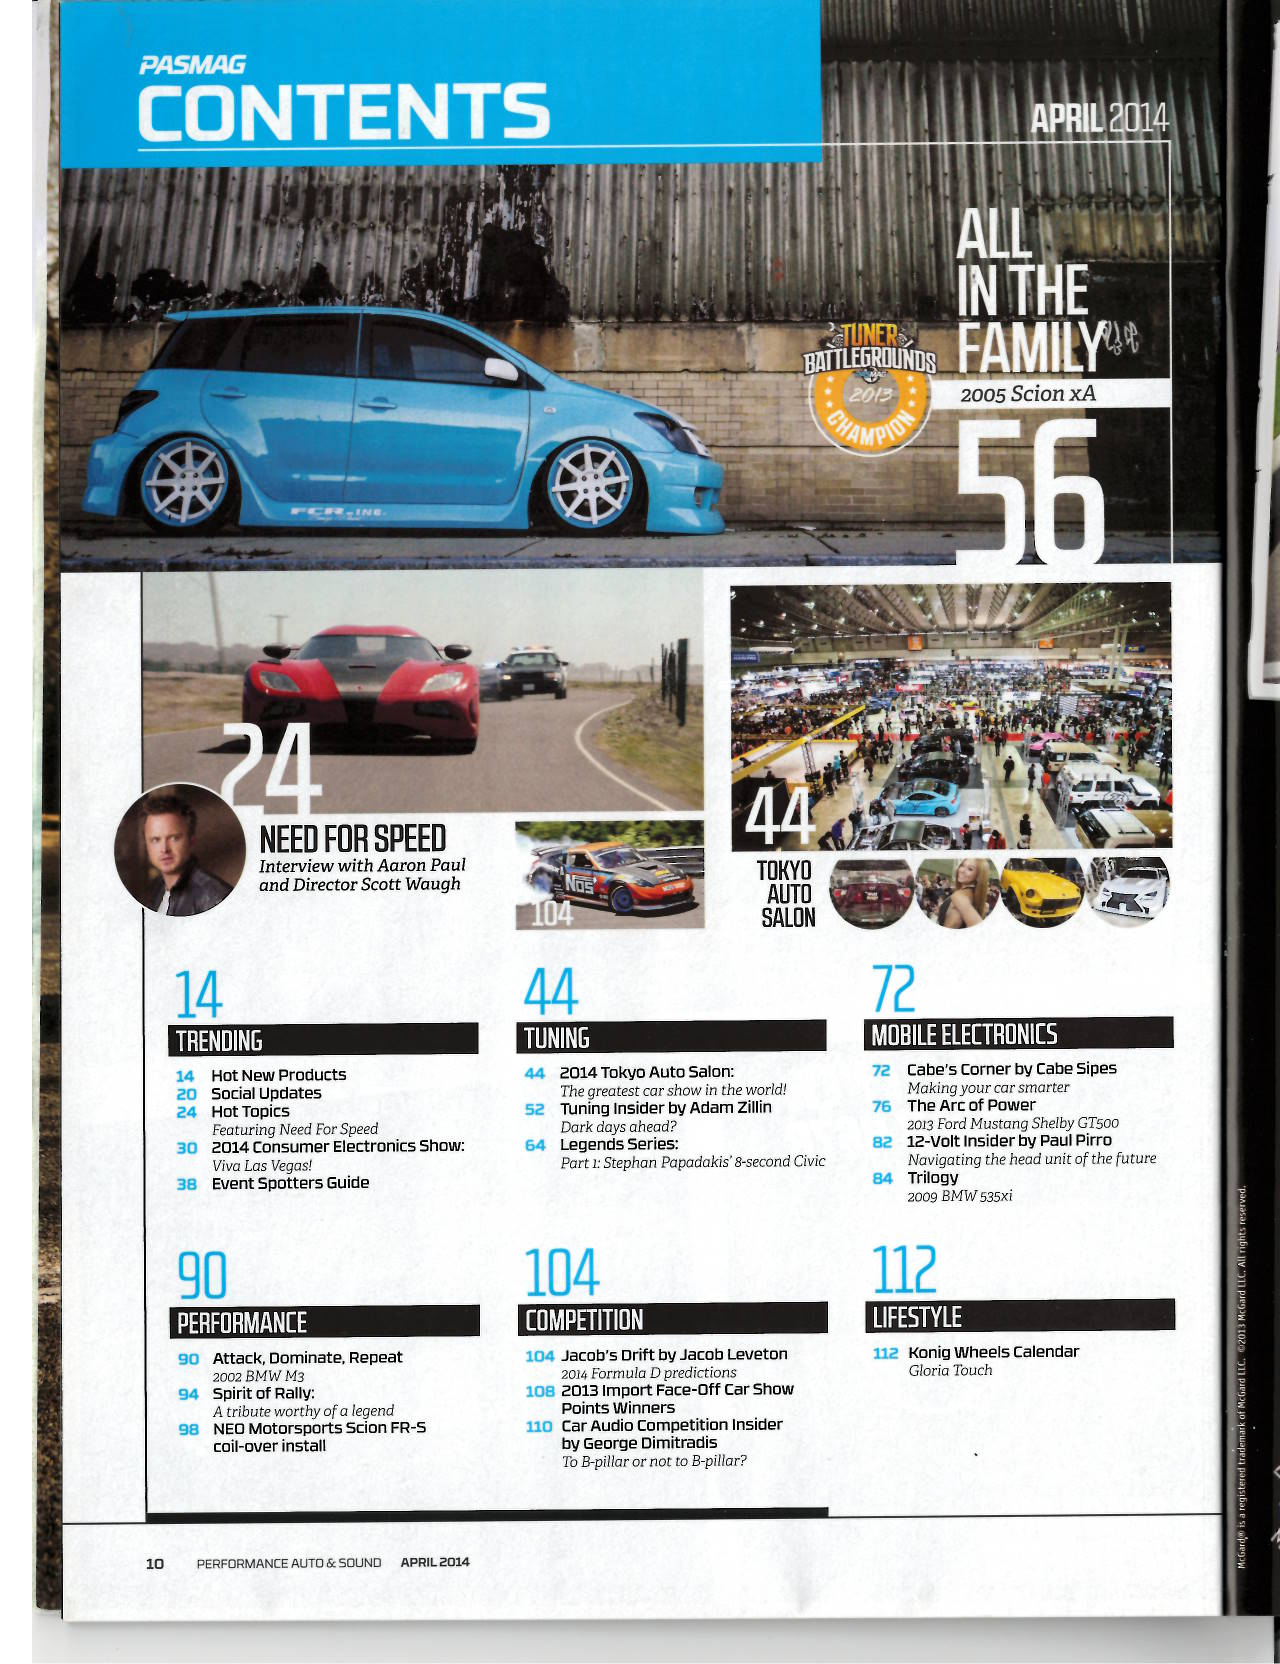 PasMag Article - April 2014 (1)_Page_2.jpg